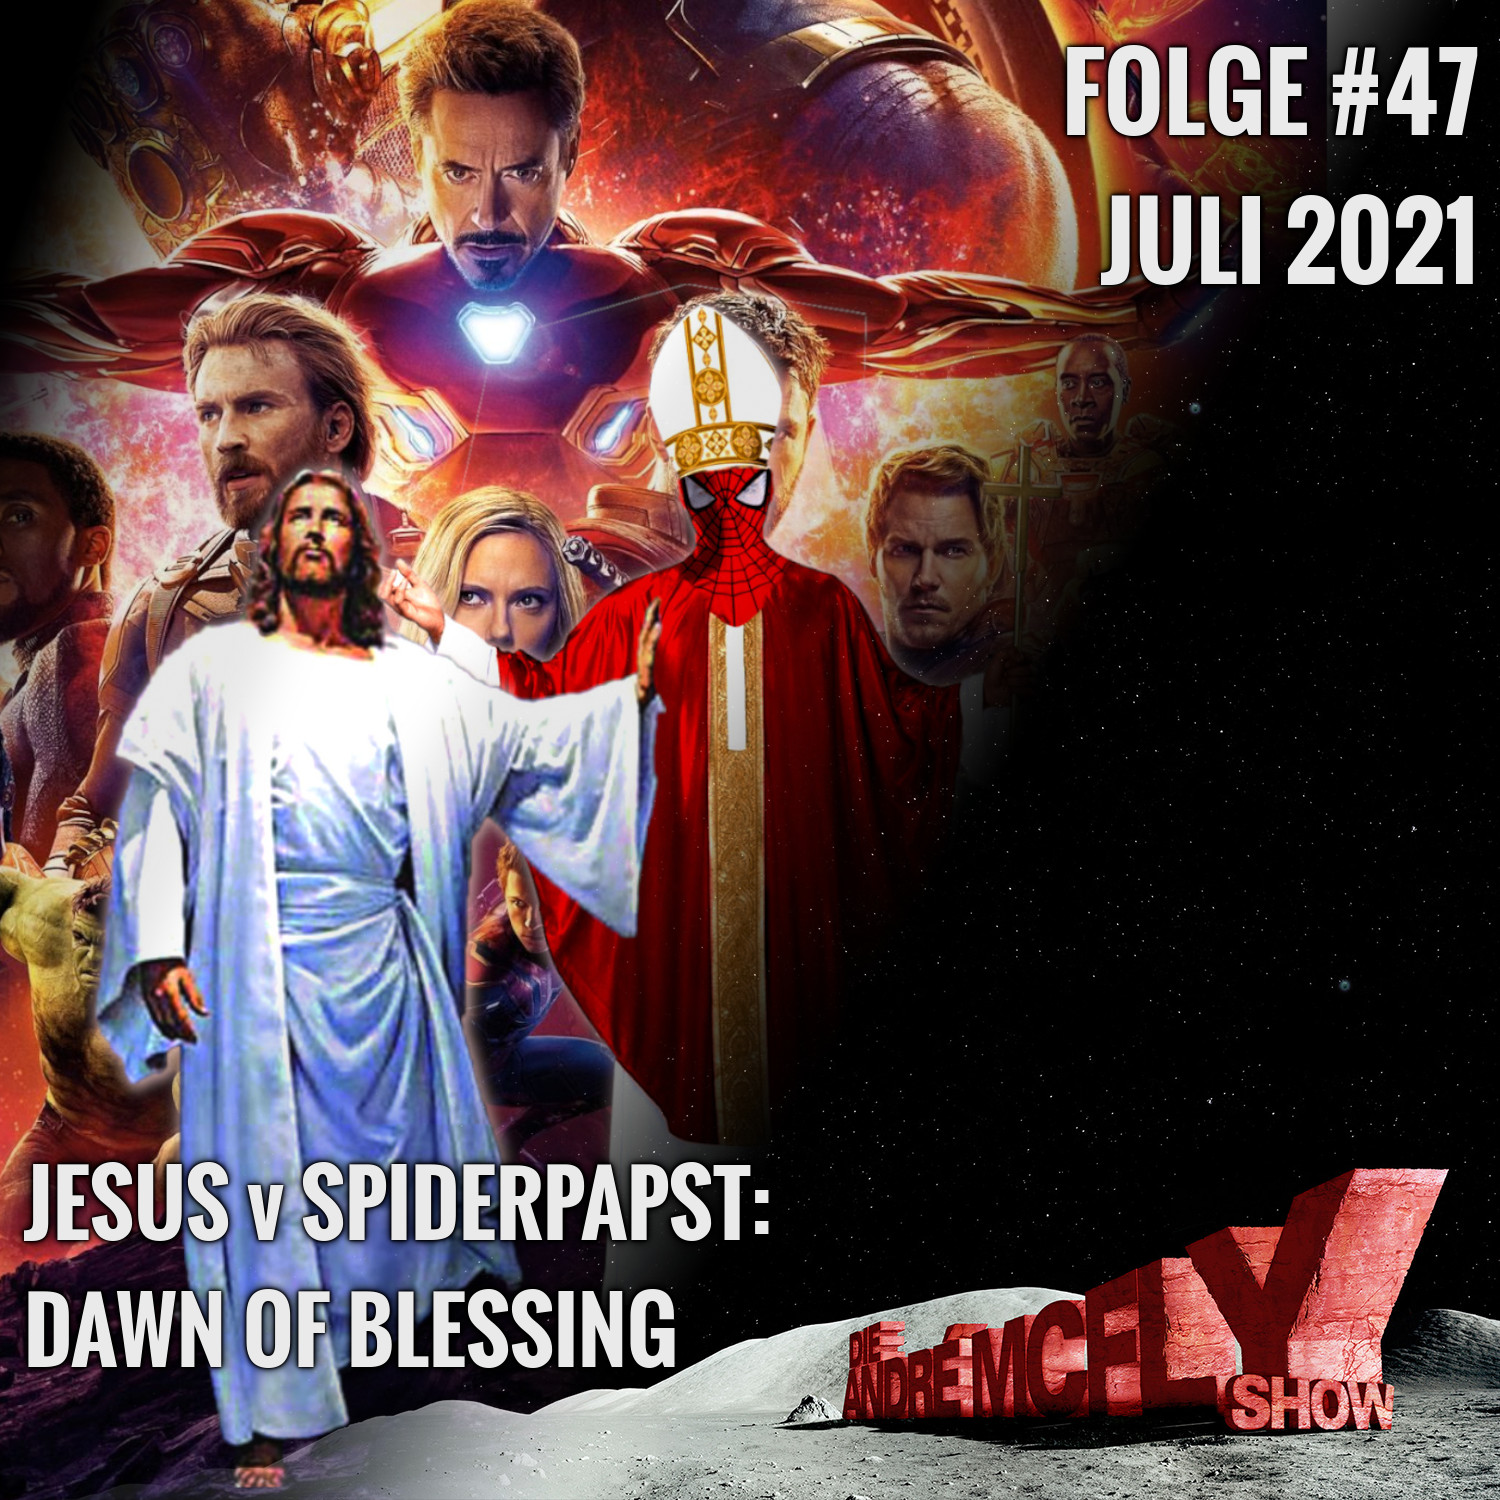 Die André McFly Show #47 | Jesus v Spiderpapst: Dawn of Blessing